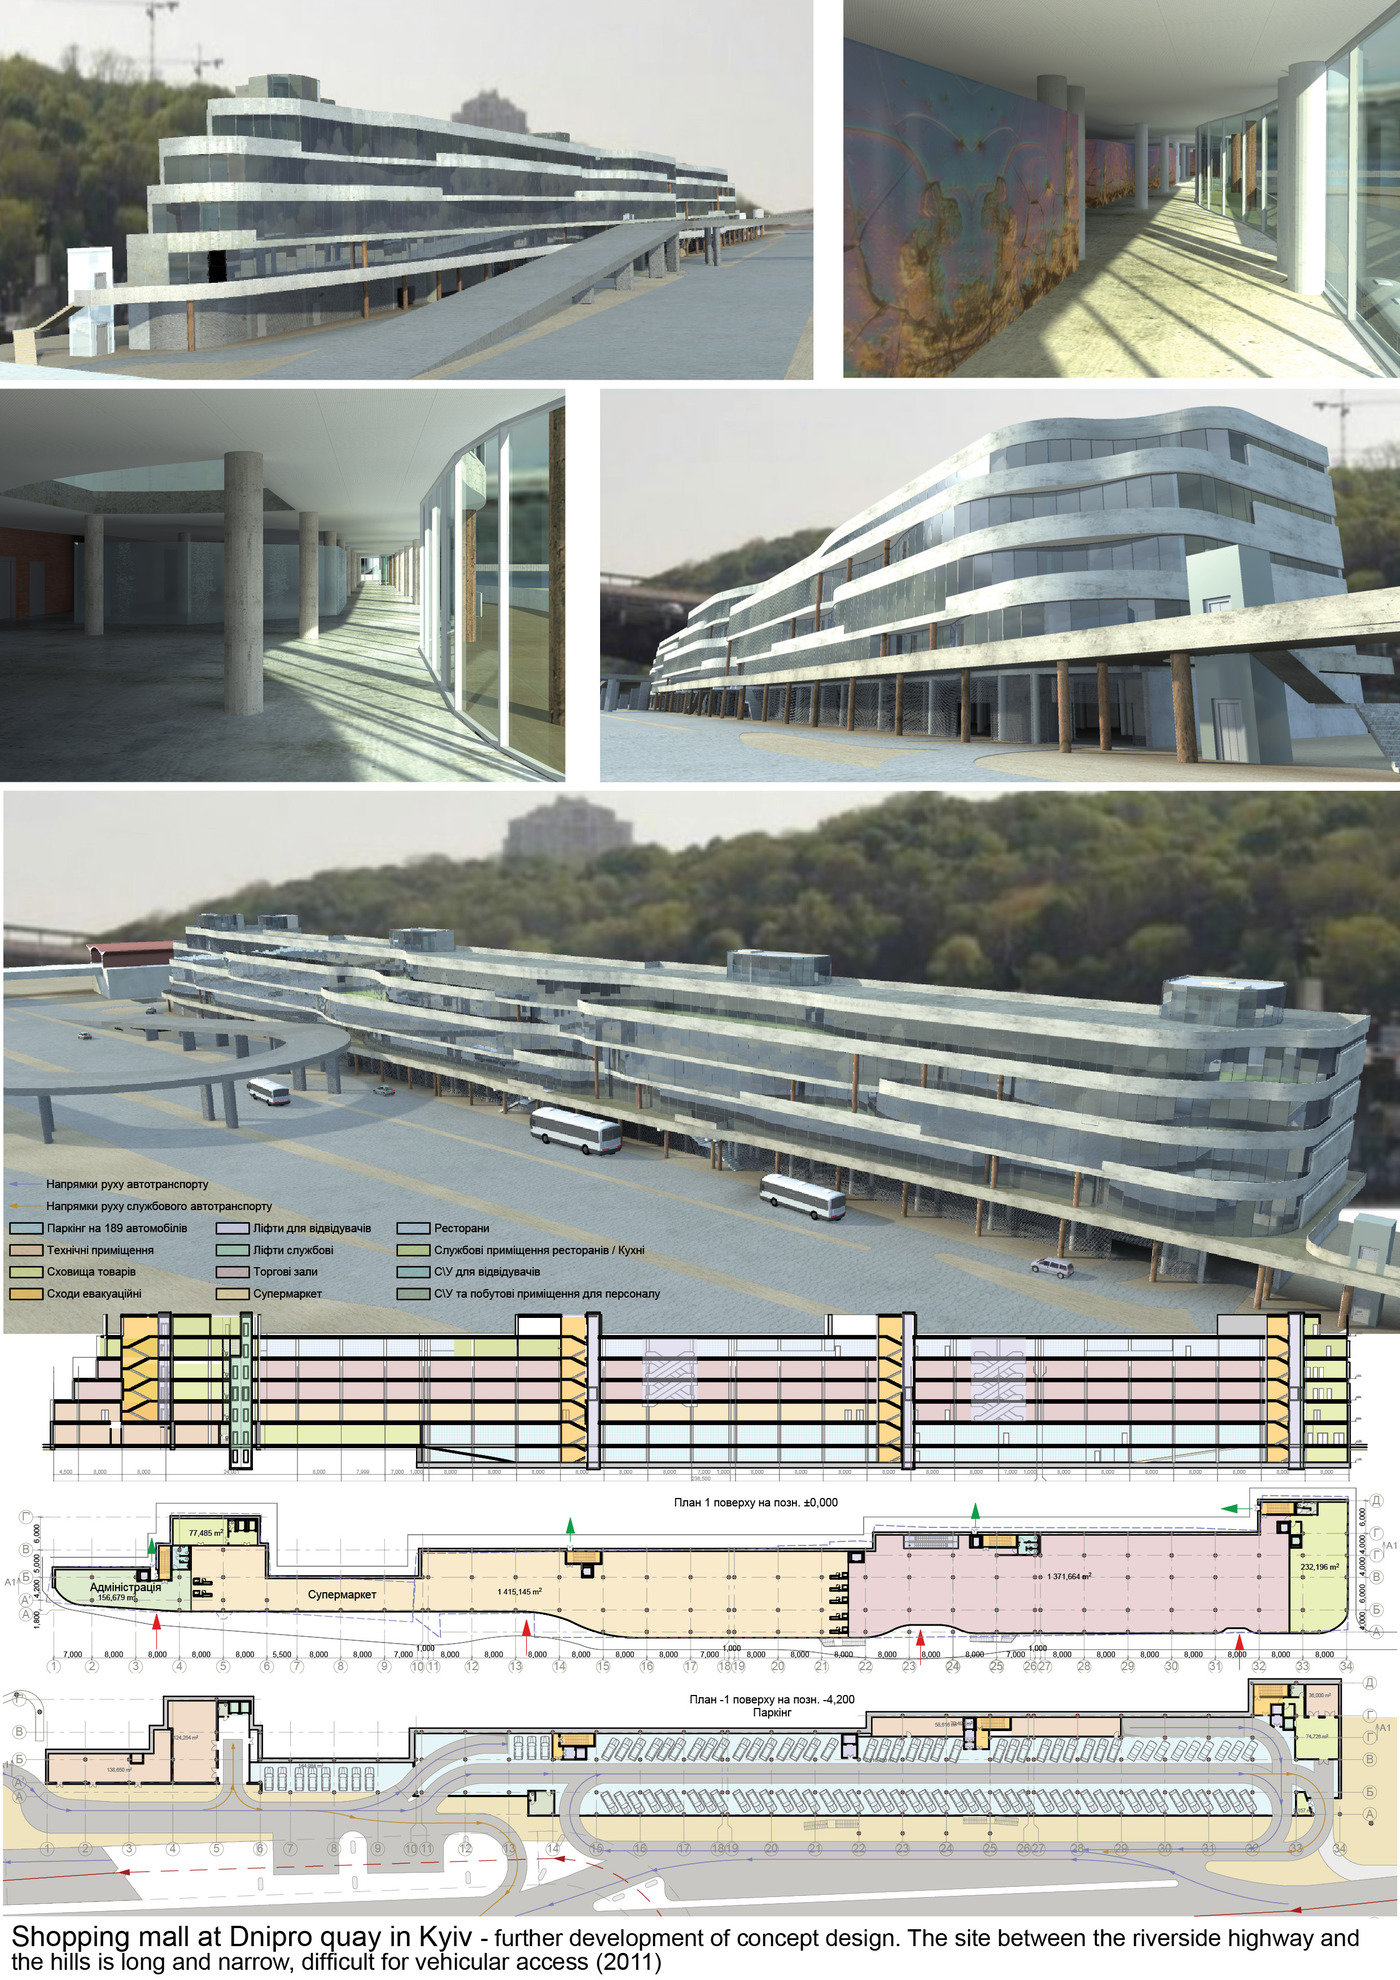 Shopping Mall, Dnipro Quay In Kyiv (2011)   Further Development Of Approved  Concept Design (2011). The Site Between The Riverside Highway And The Hills  Is ...